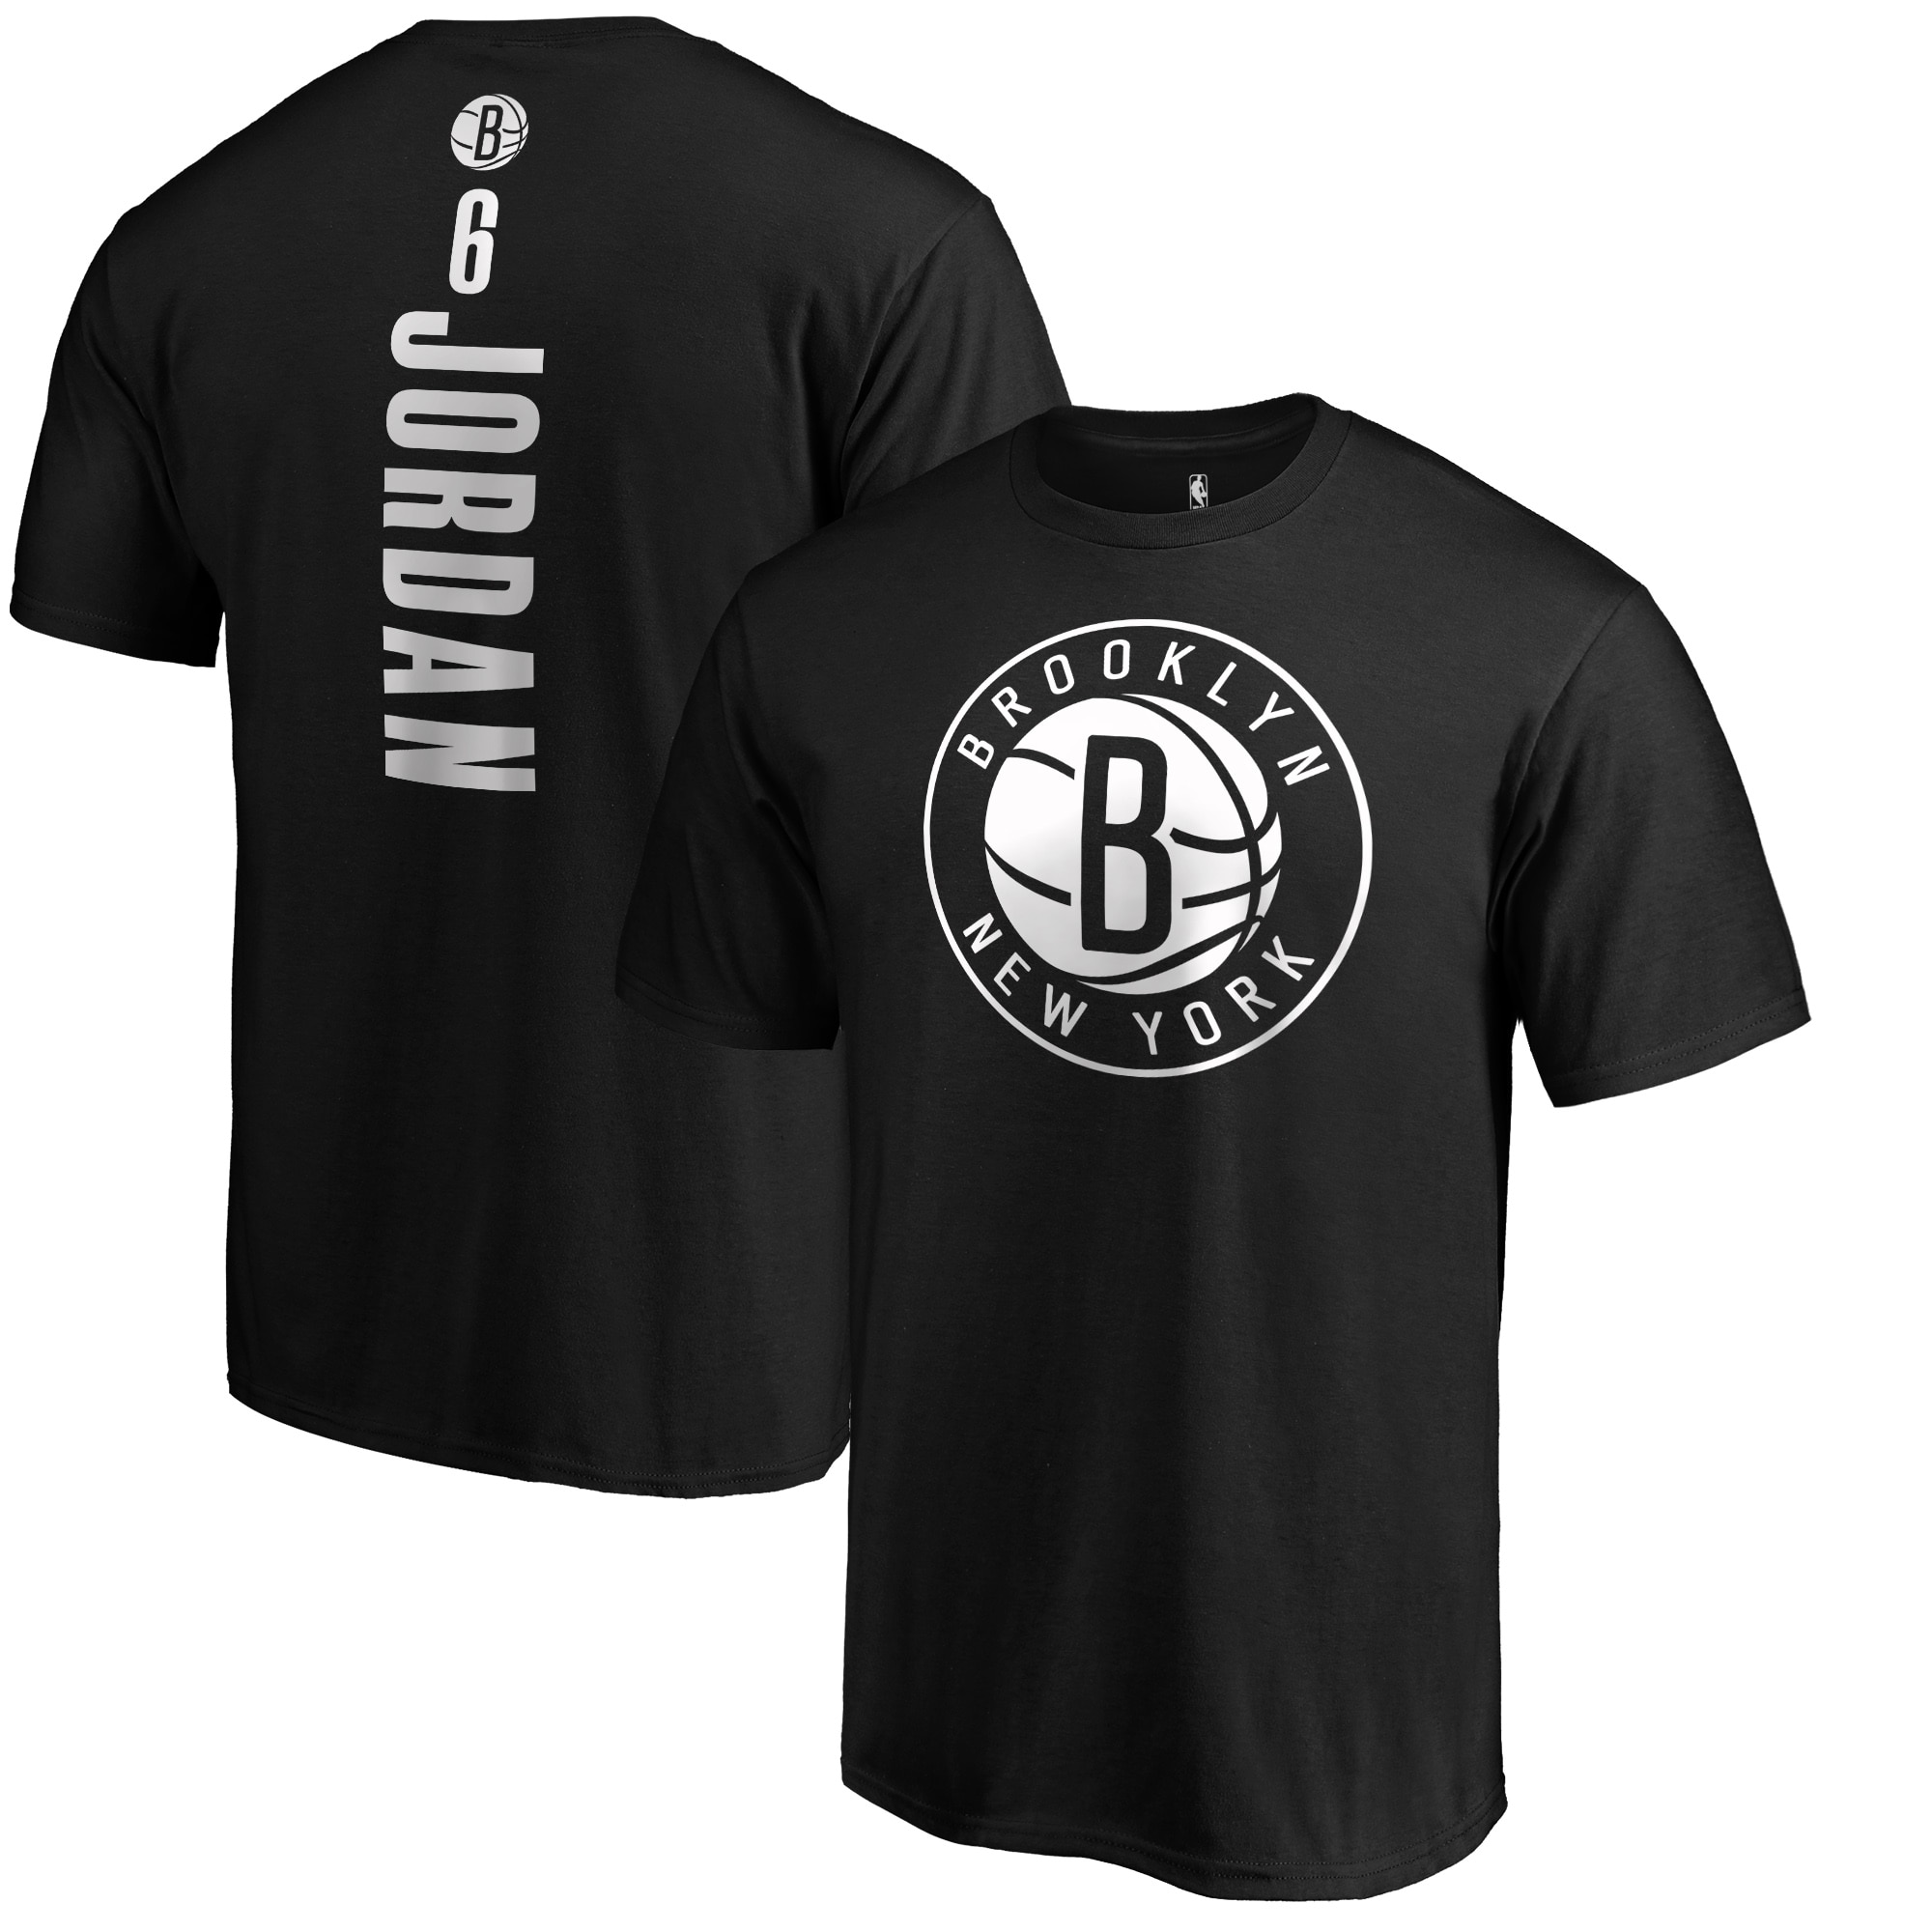 DeAndre Jordan Brooklyn Nets Fanatics Branded Playmaker Name & Number T-Shirt - Black